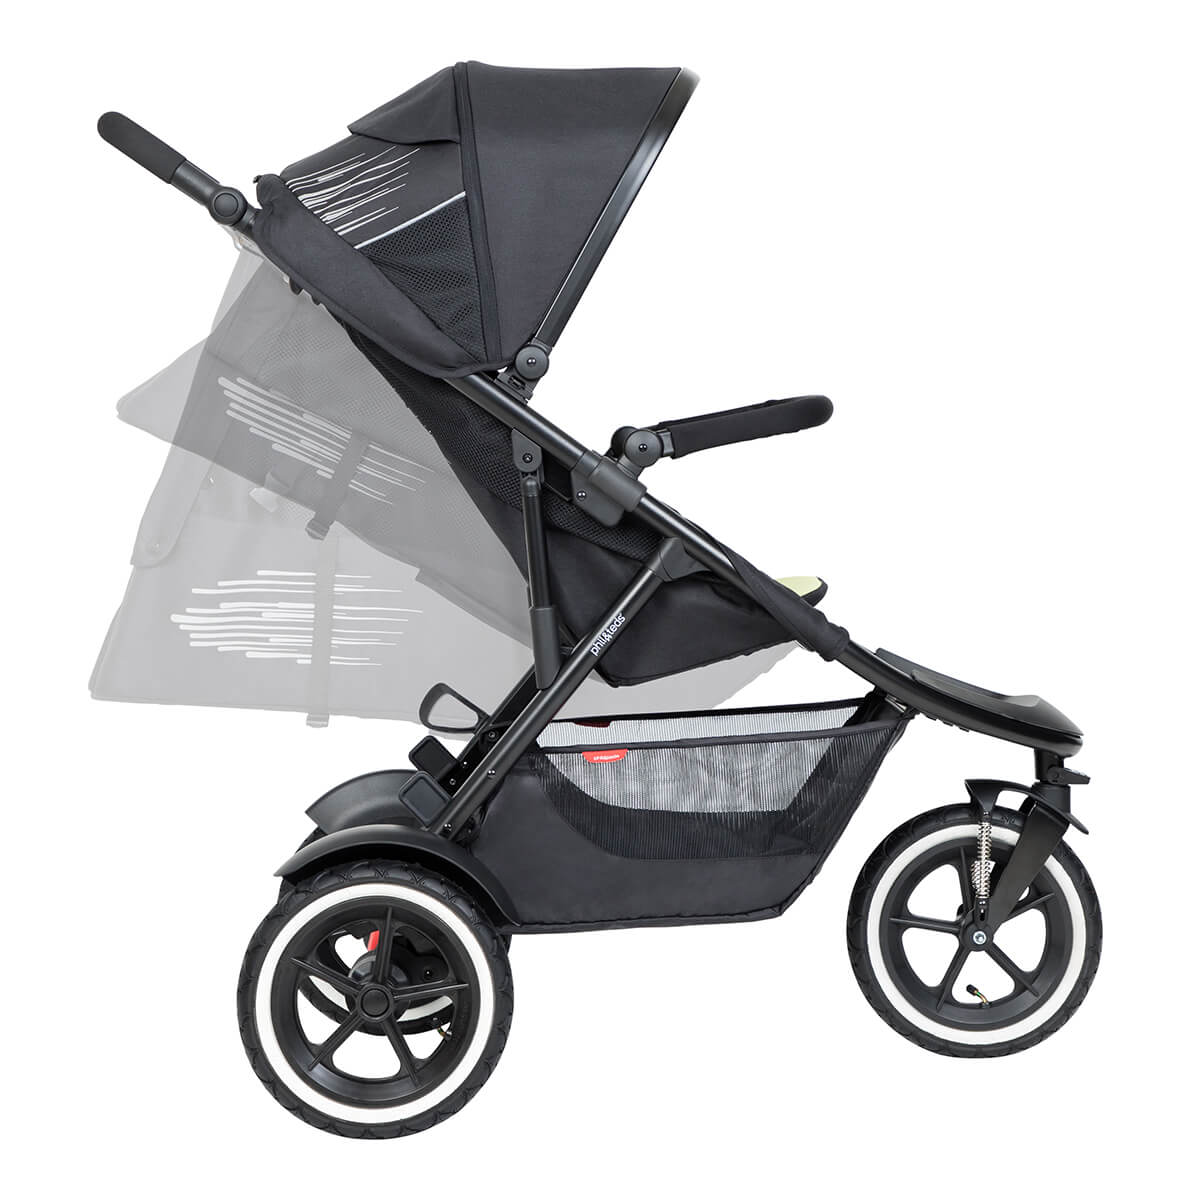 https://cdn.accentuate.io/4509867475041/19793939267754/philteds-sport-buggy-can-recline-in-multiple-angles-including-full-recline-for-newborn-baby-v1626485332507.jpg?1200x1200